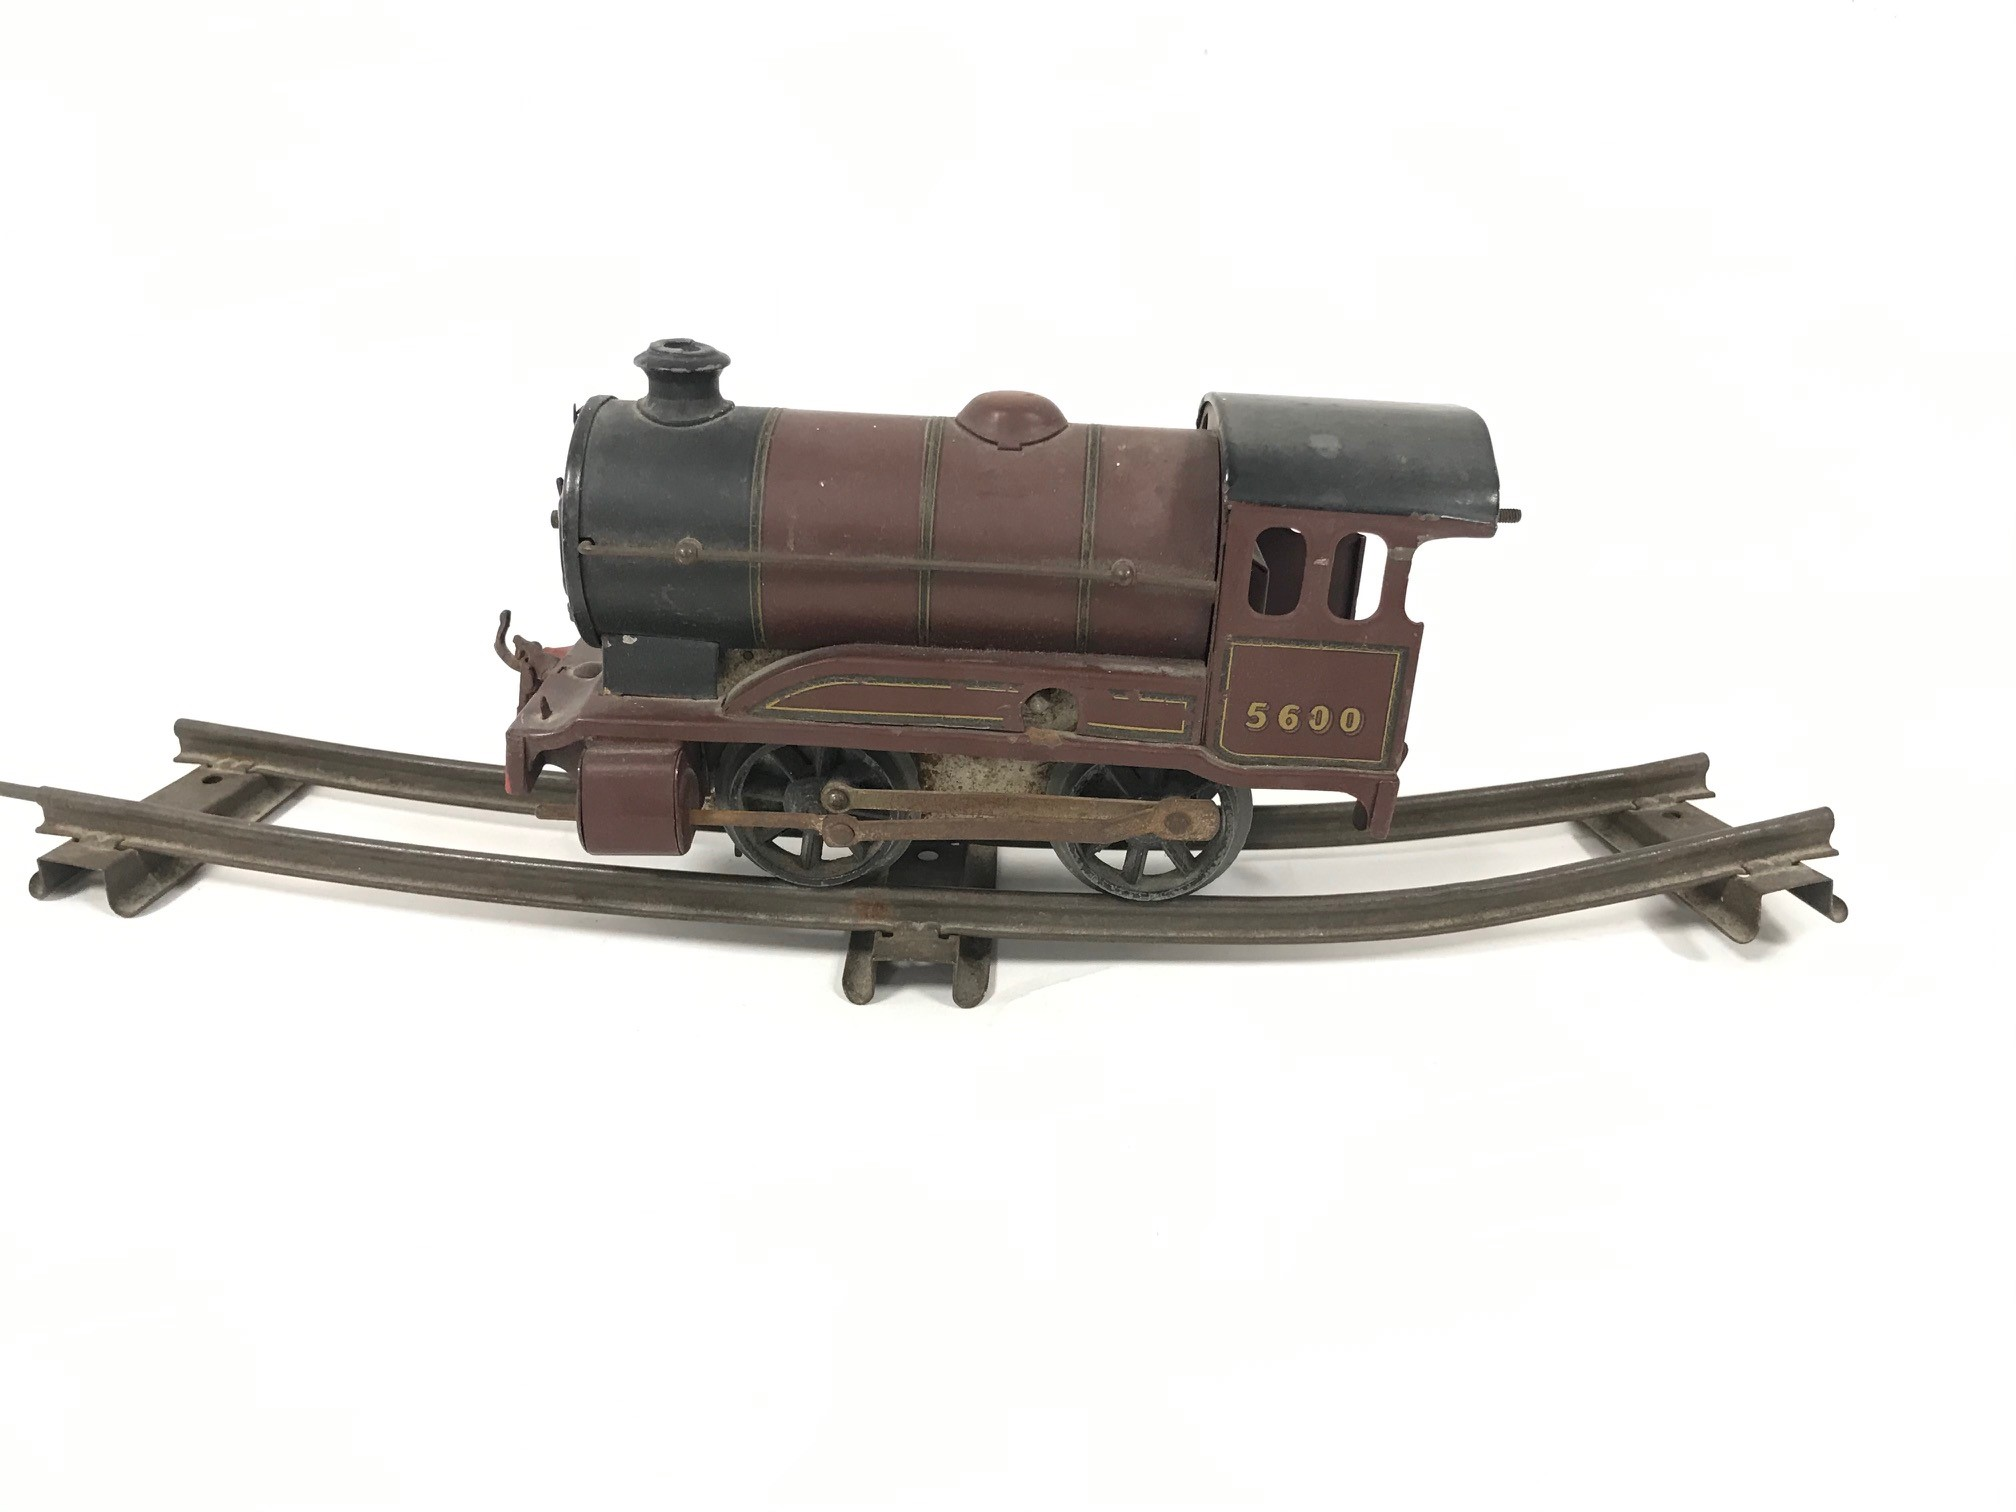 An Hornby 0 gauge clockwork locomotive, 0-4-0, in marron, marked 5600